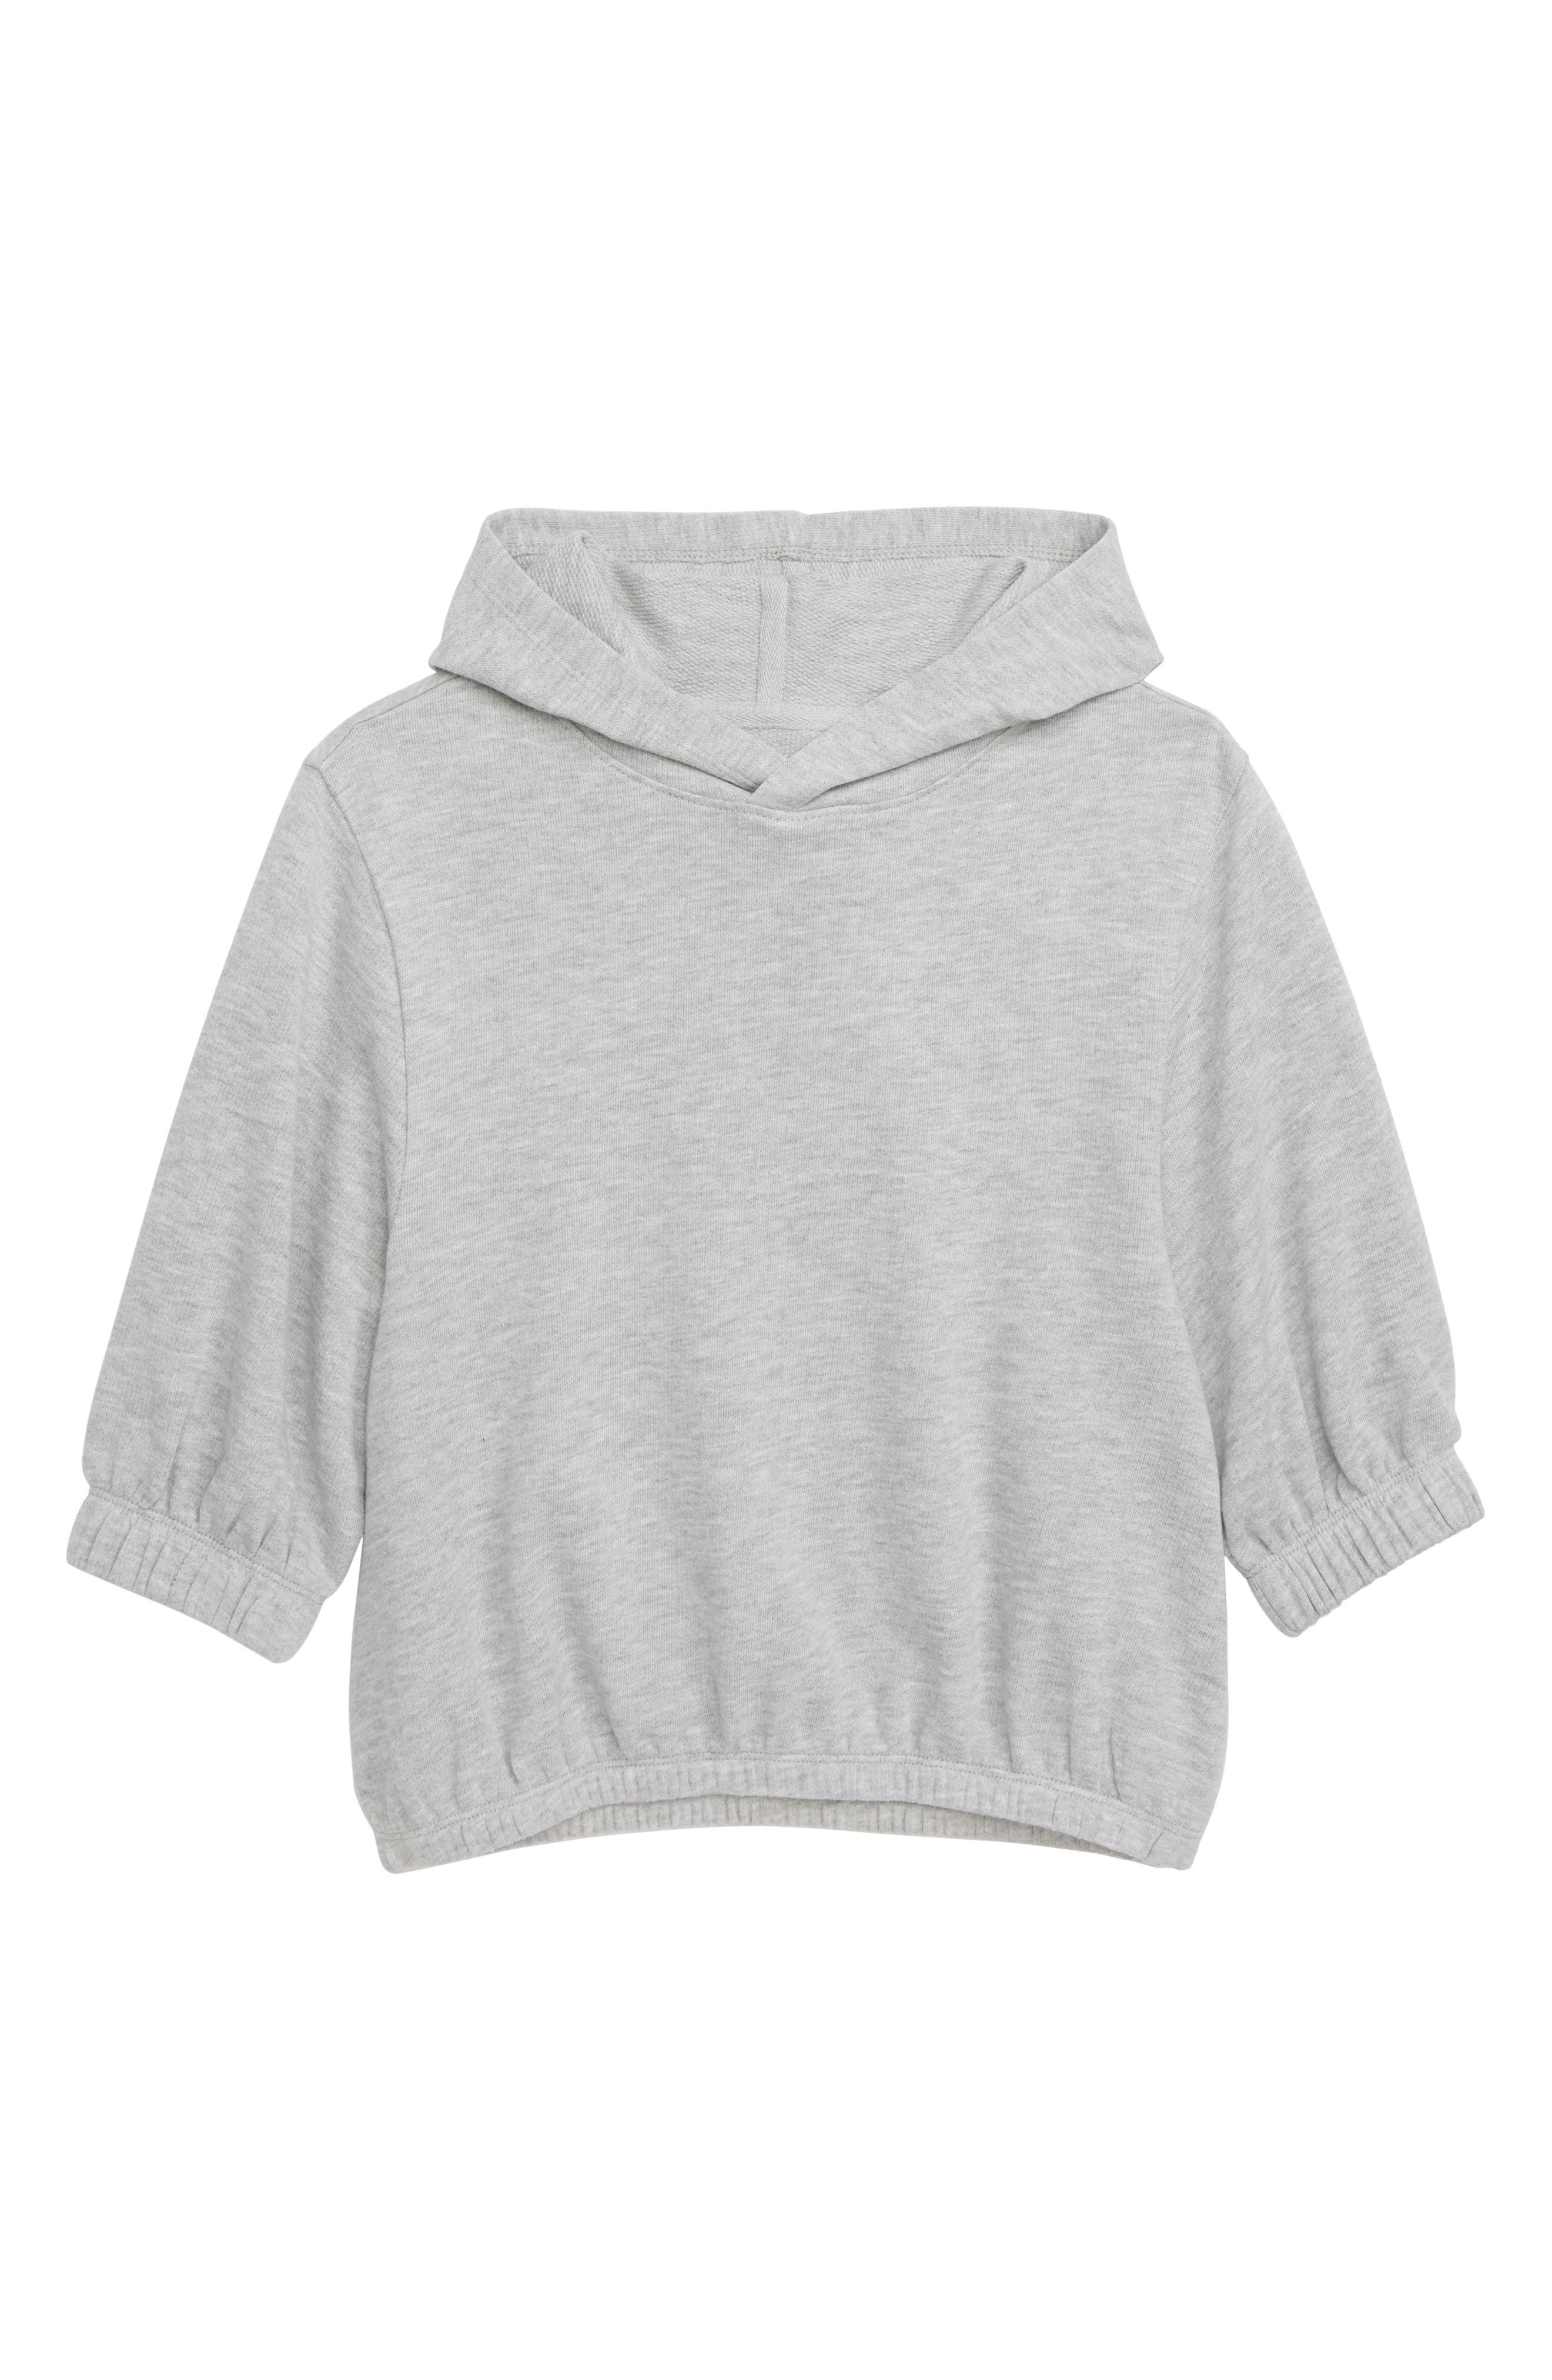 ZELLA GIRL Pullover Hoodie, Main, color, 050